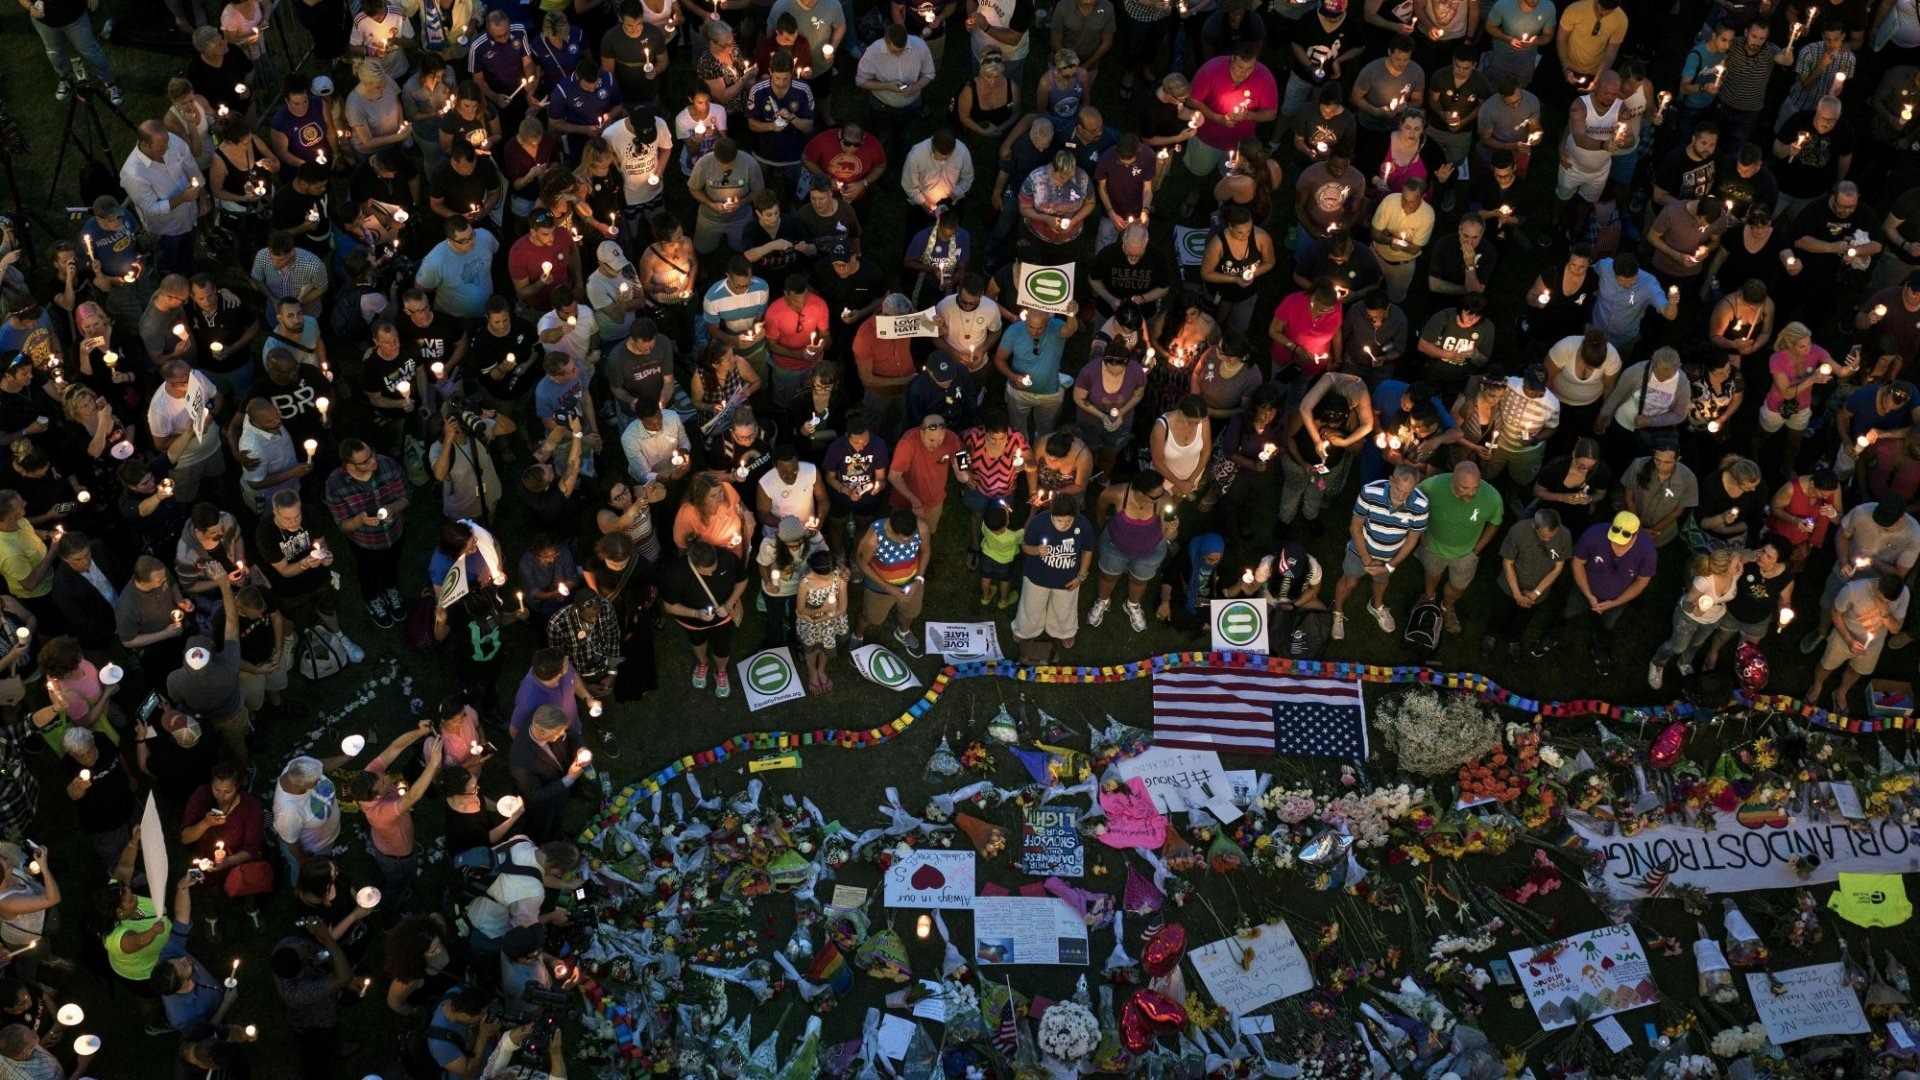 Mourners come out for a vigil at the Dr. Phillips Center for the Performing Arts in Orlando to pay respects to the 49 people who were killed over the weekend at Pulse, an LGBT-friendly bar in Orlando.